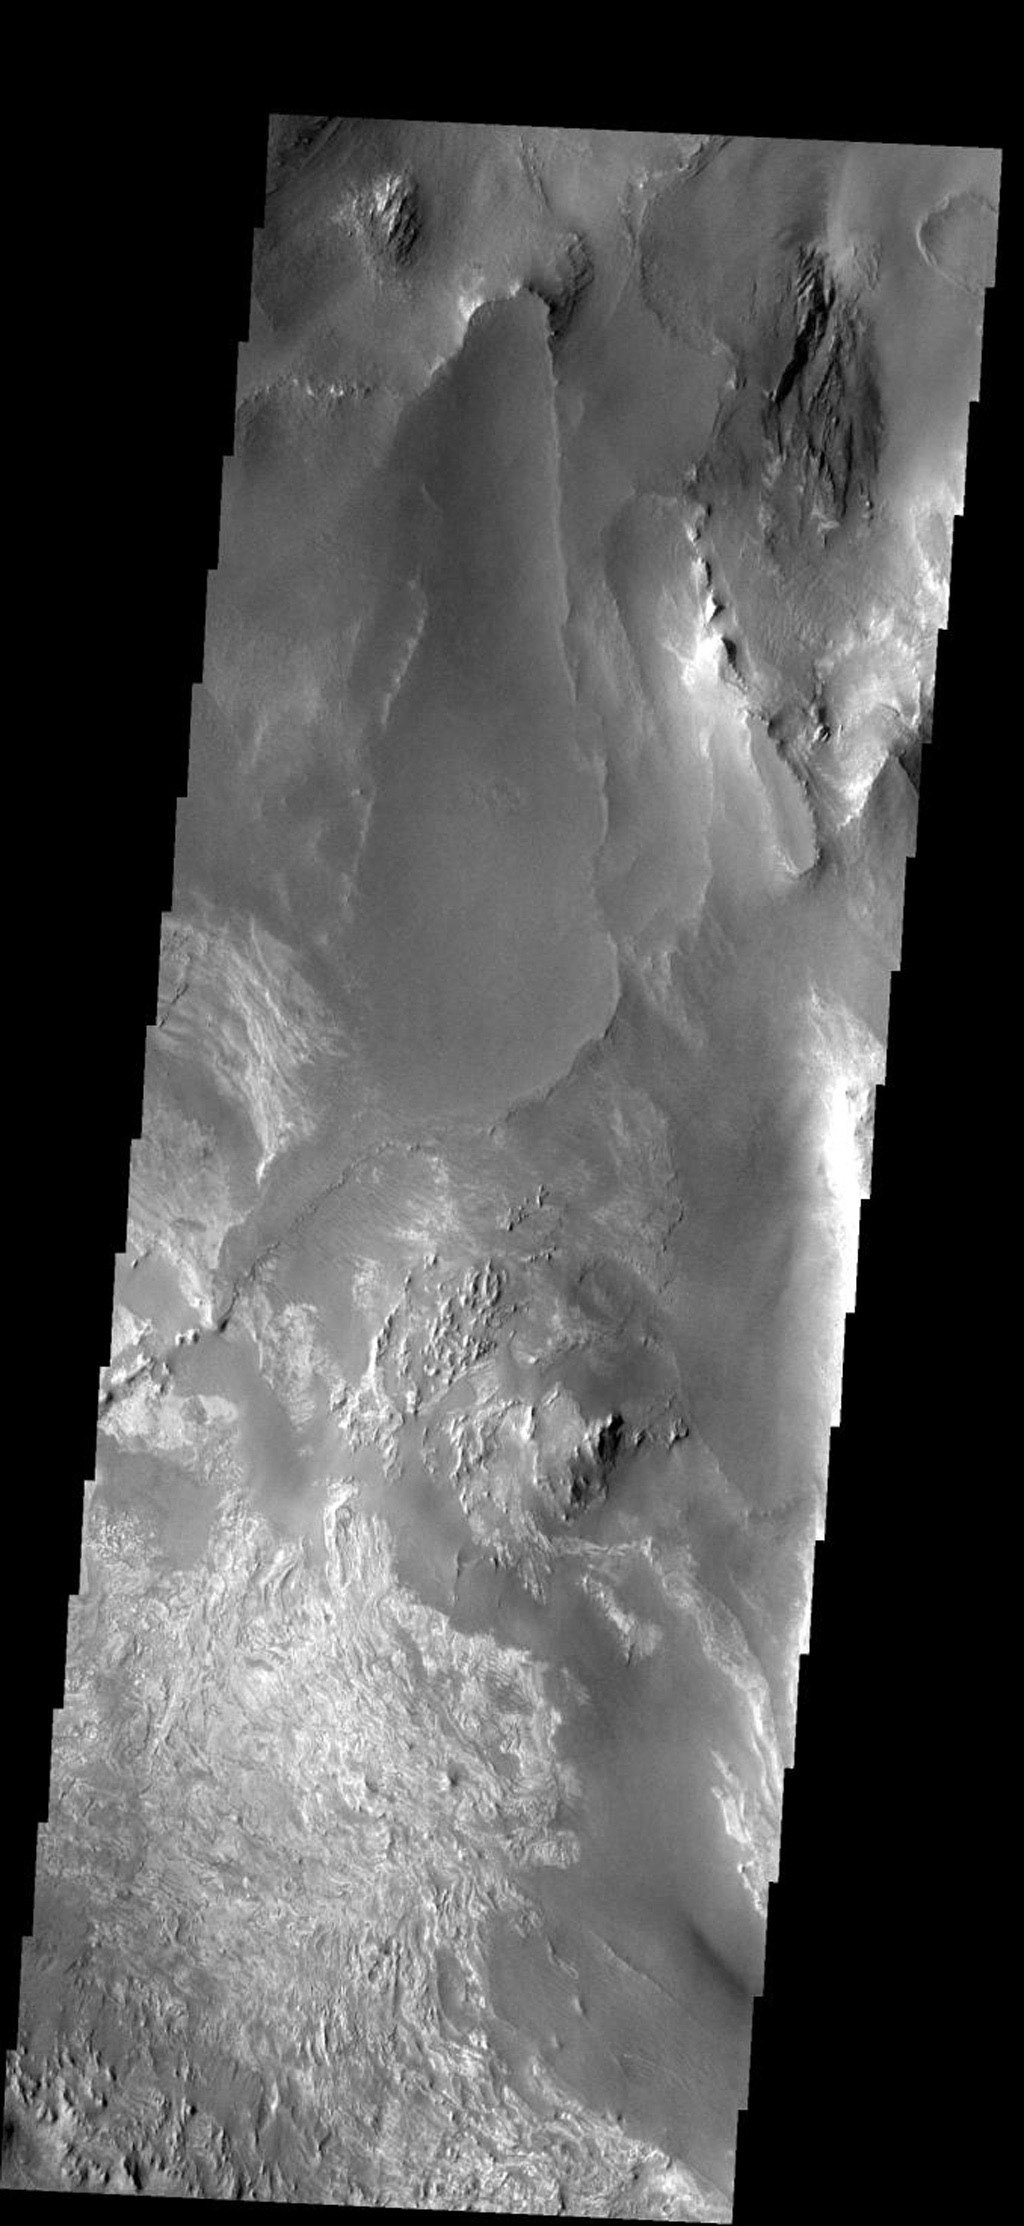 This image shows part of the floor of Melas Chasma. Layered materials and sand are common in this section of canyon on Mars, taken by NASA's Mars 2001 Odyssey spacecraft.